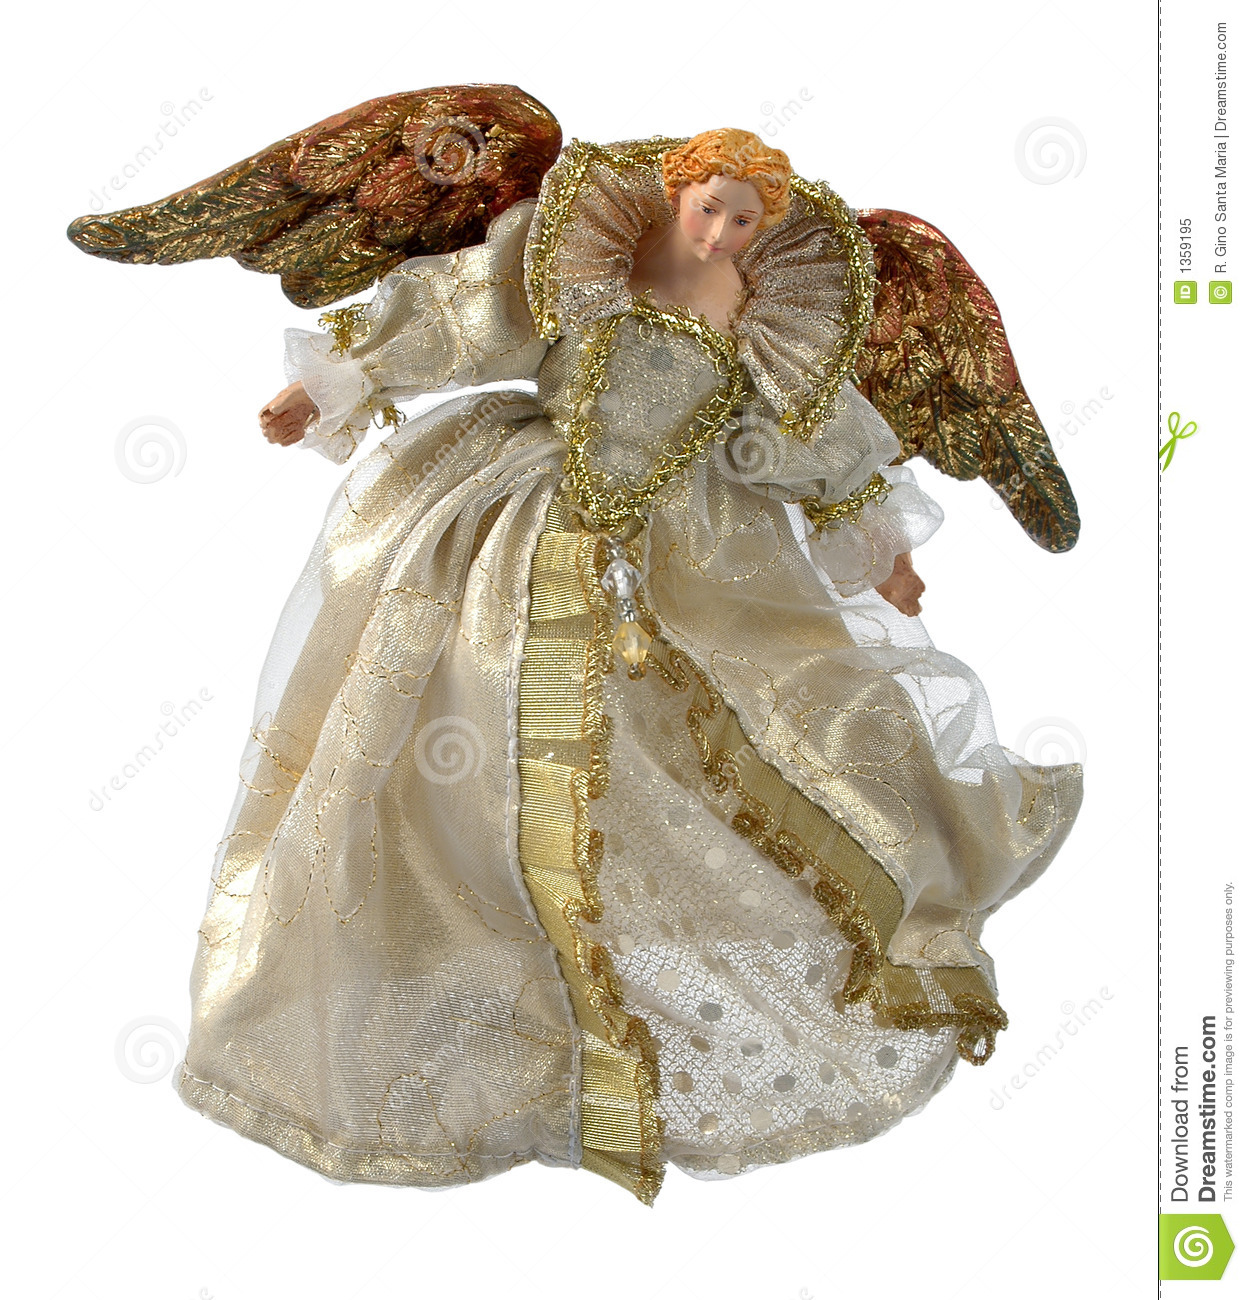 Angel Christmas Ornament Antique Stock Image Image Of Isolation